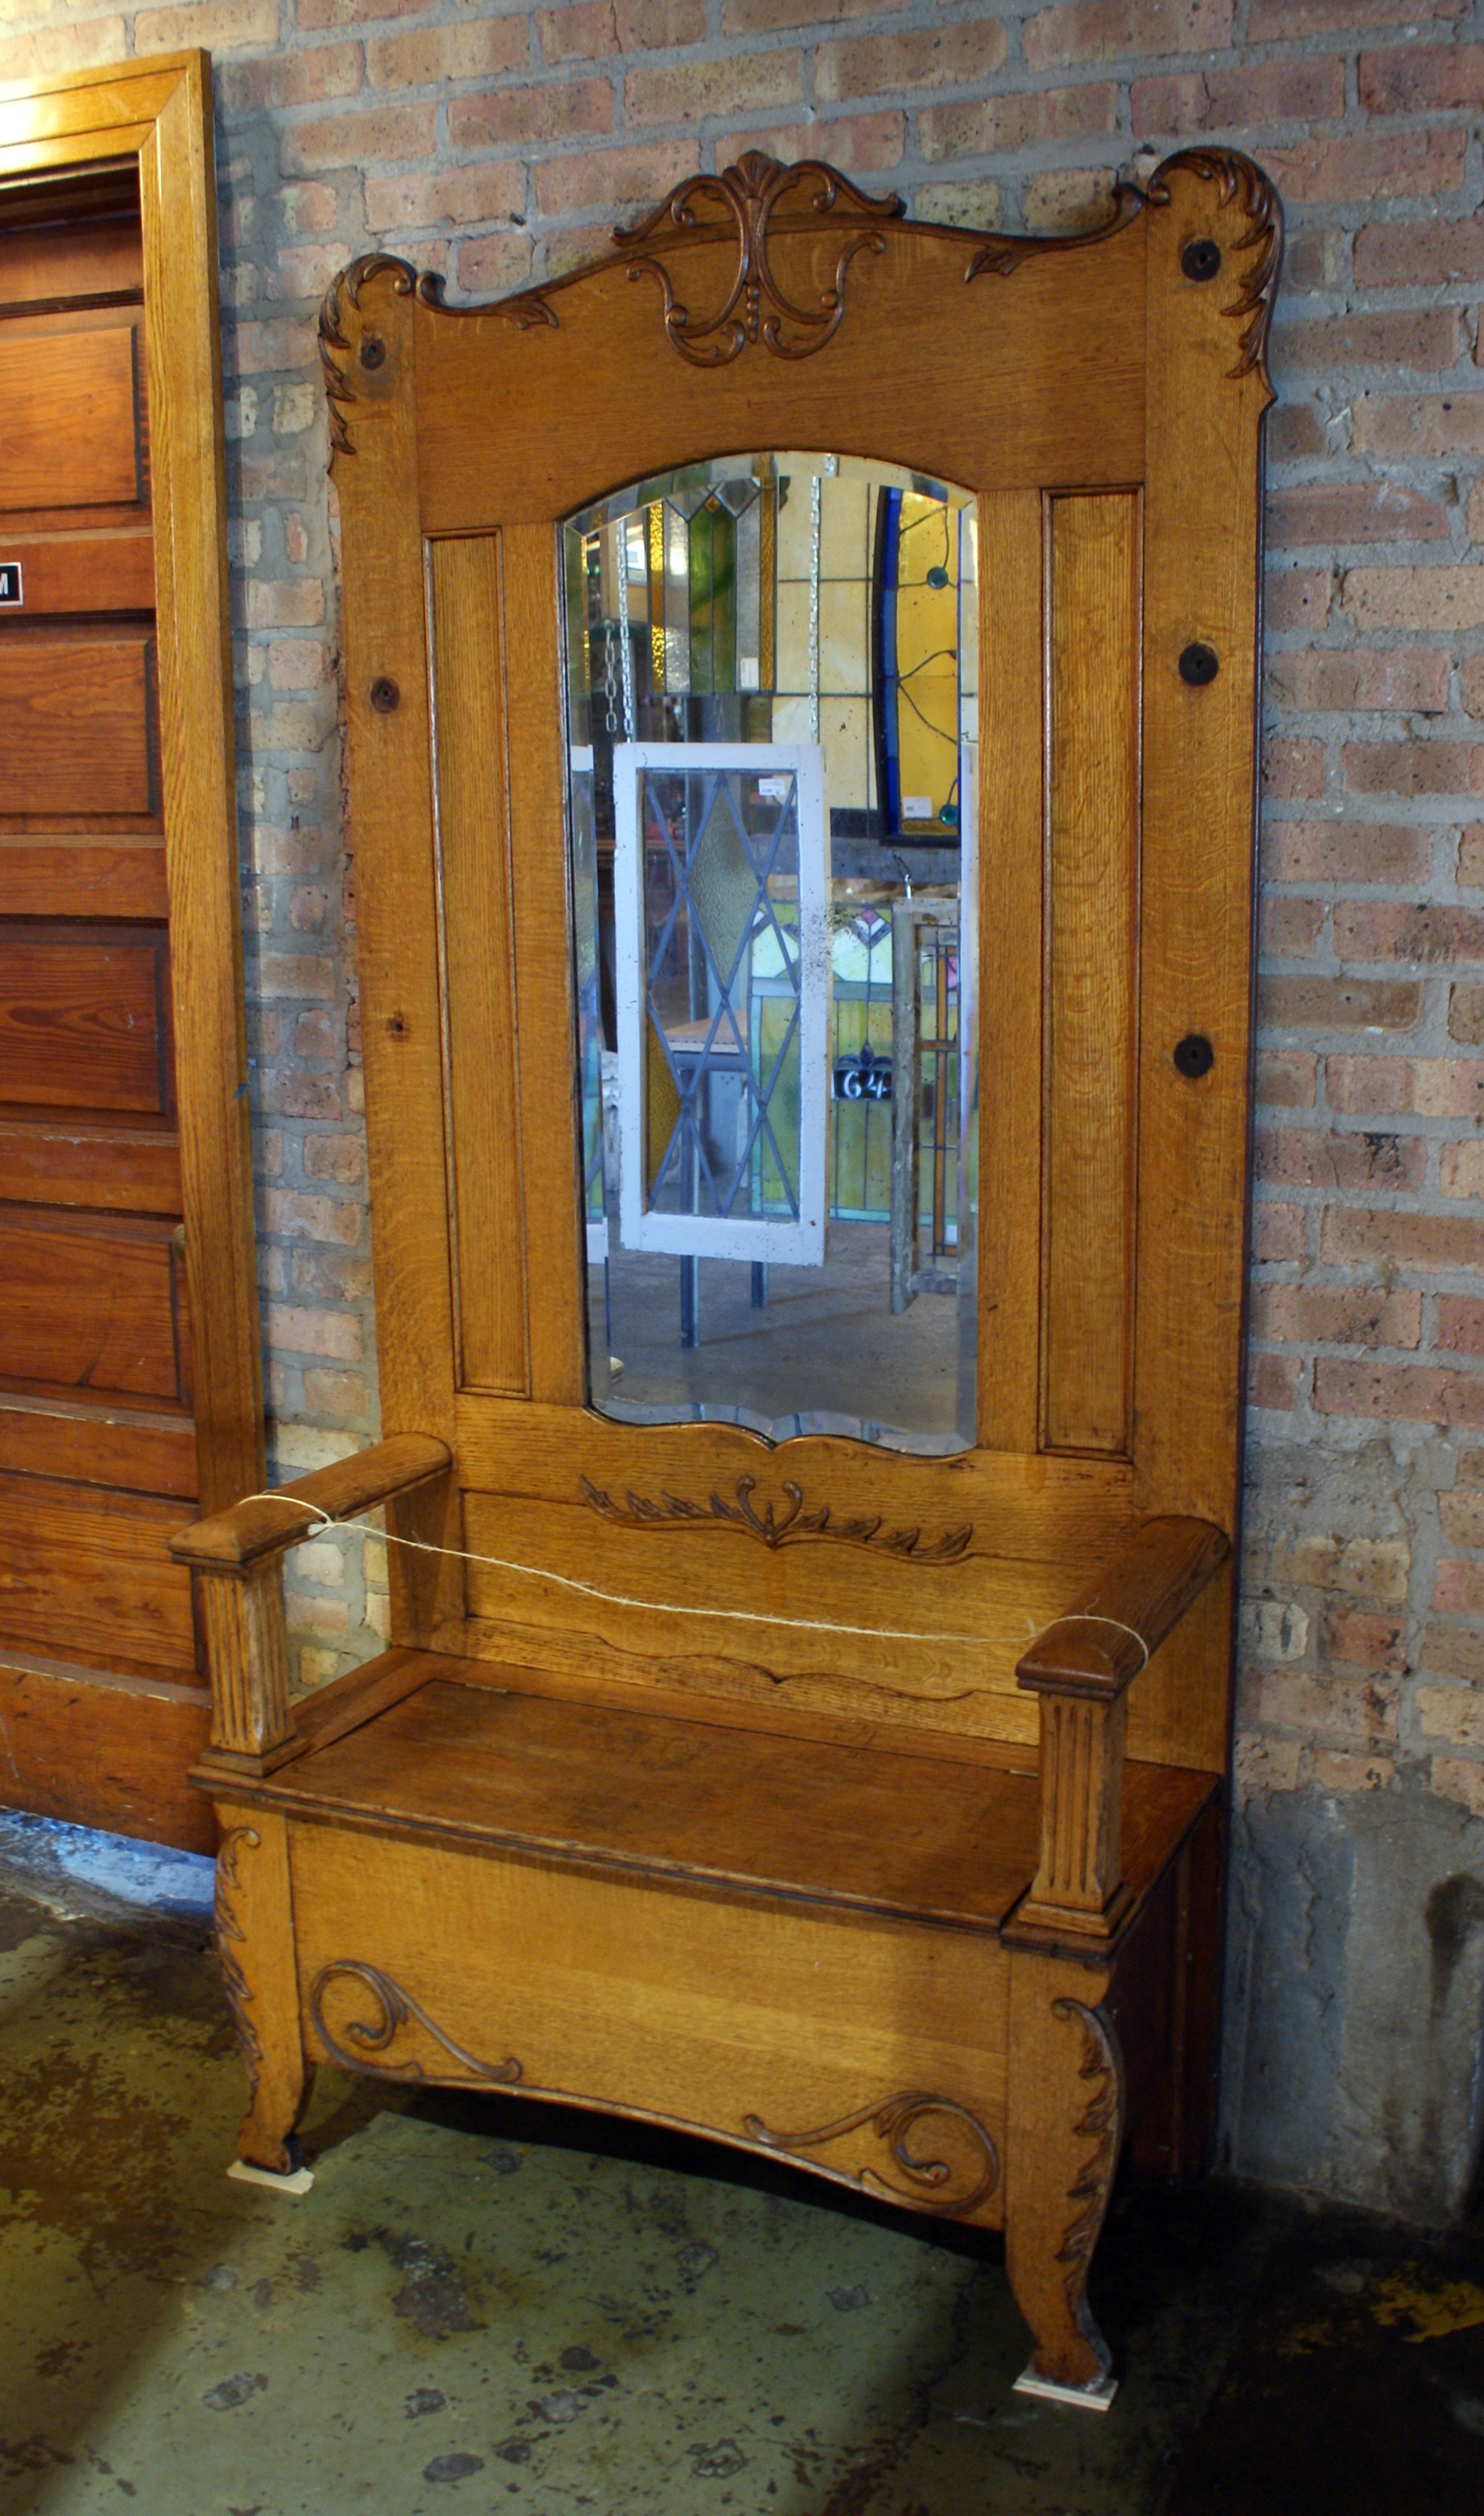 Swell Antique Hall Bench W Mirror And Storage Theyellowbook Wood Chair Design Ideas Theyellowbookinfo